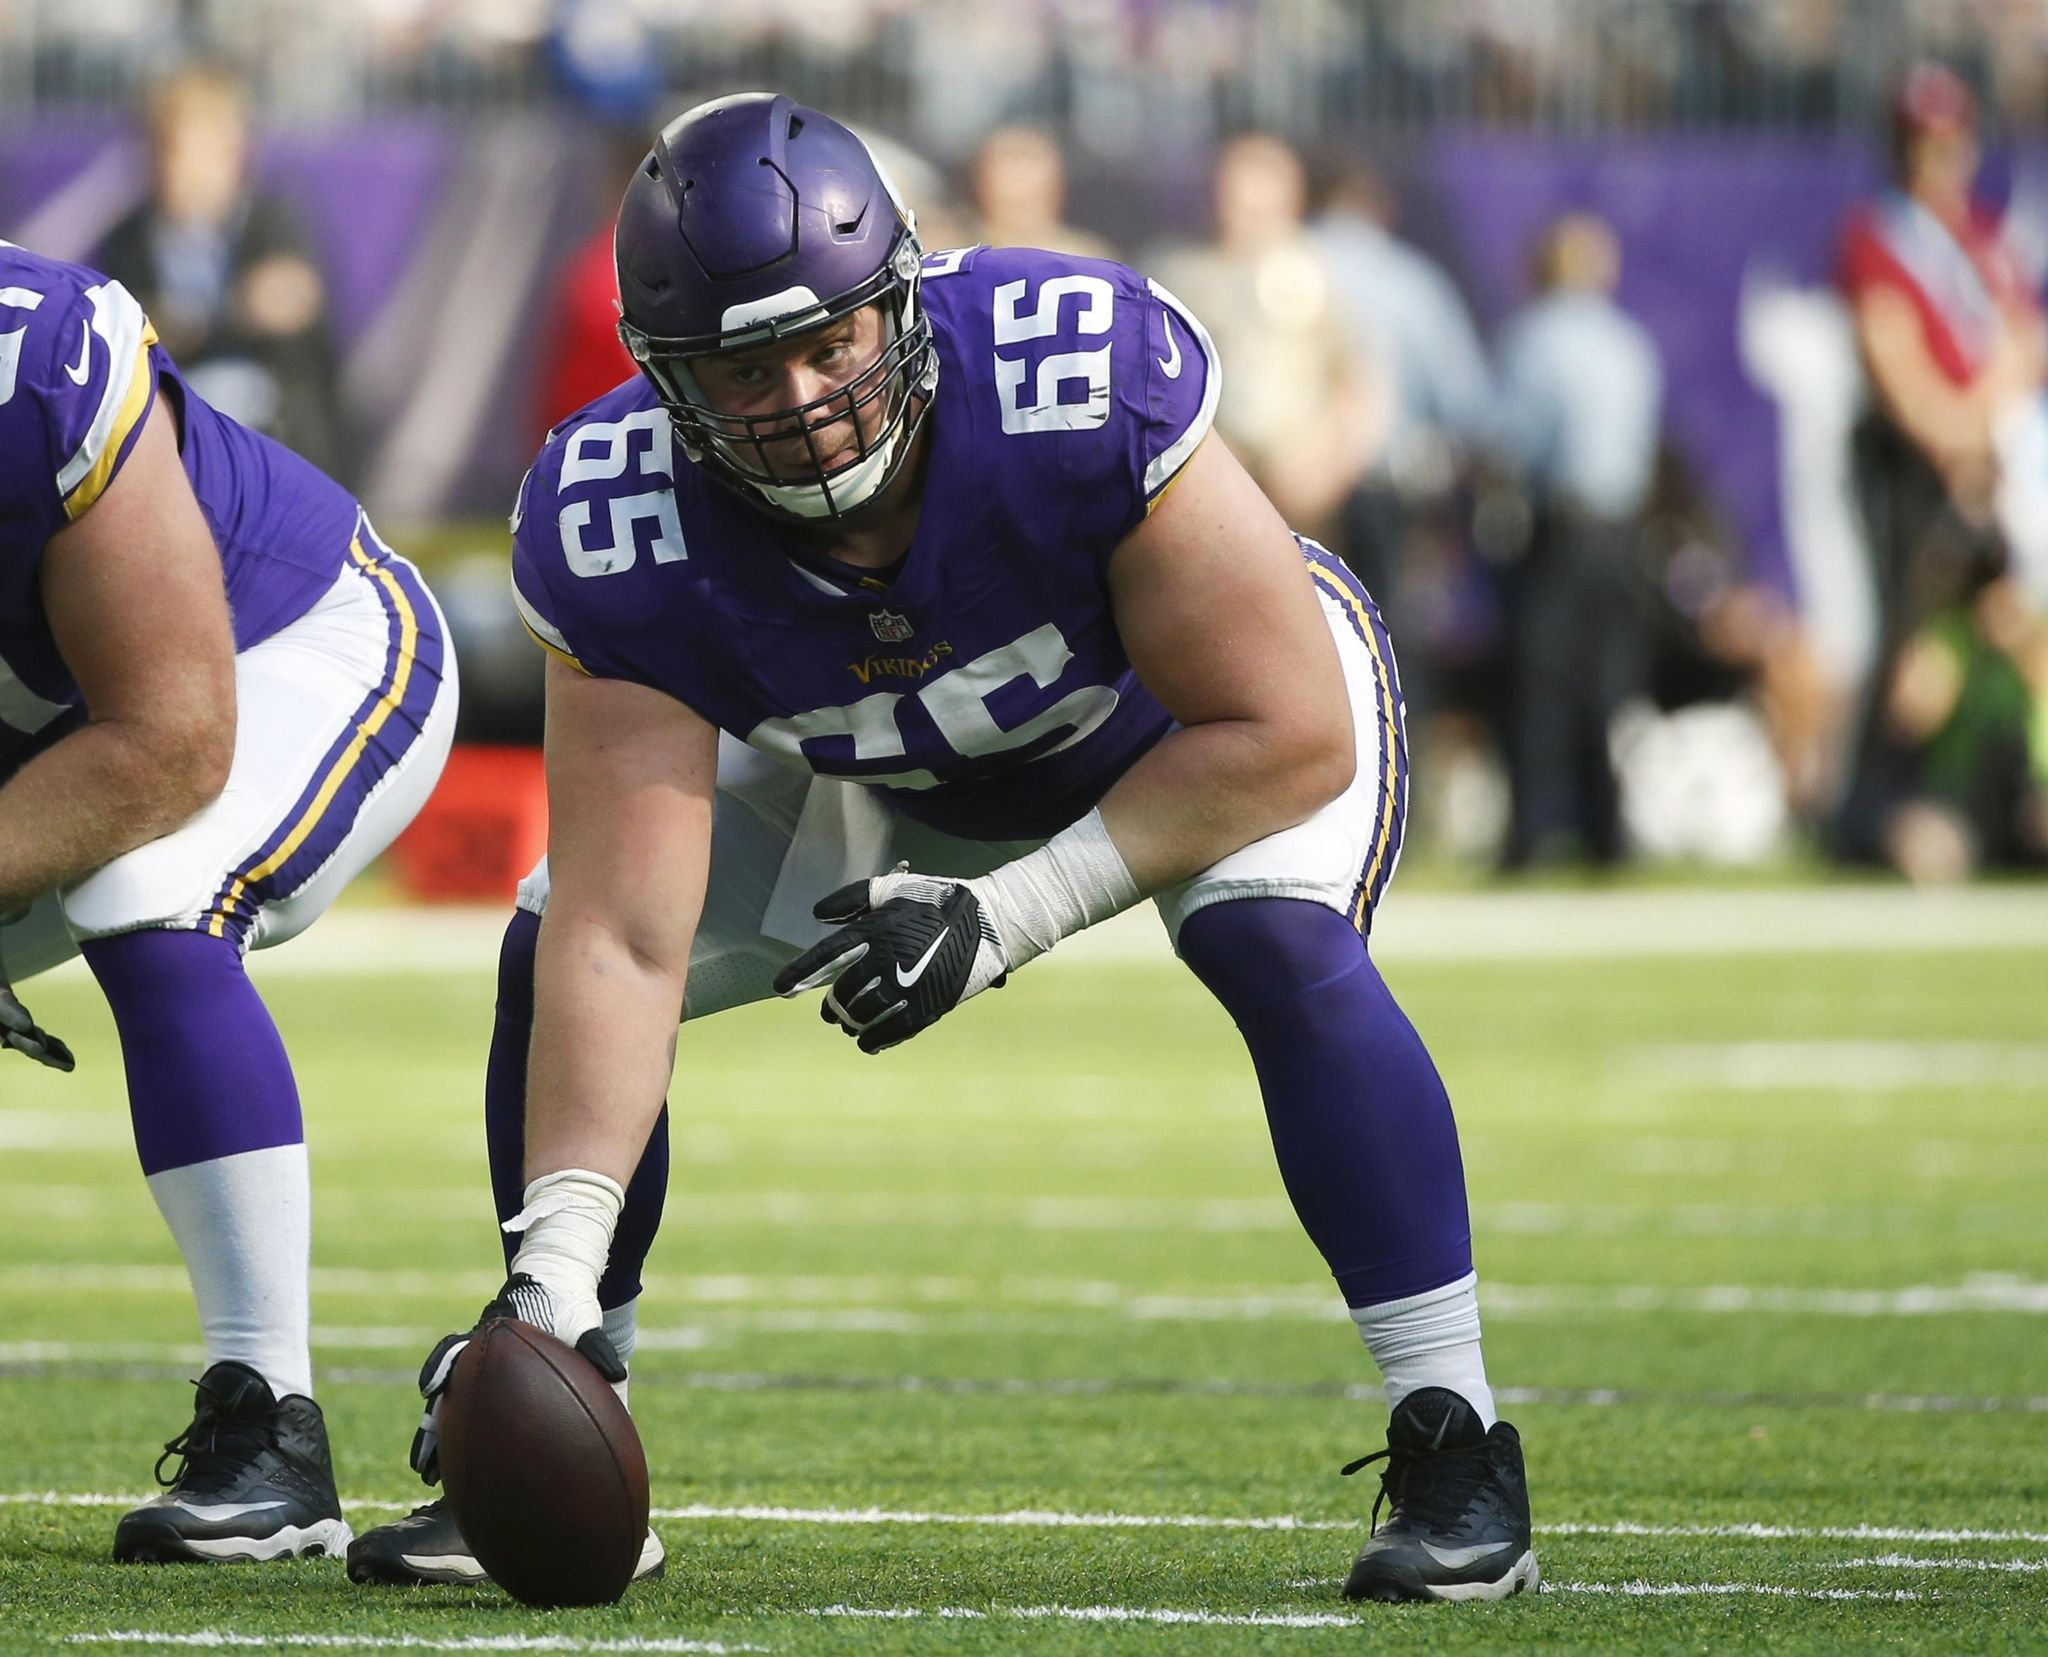 Vikings_center_of_attention_football_94581_s2048x1657